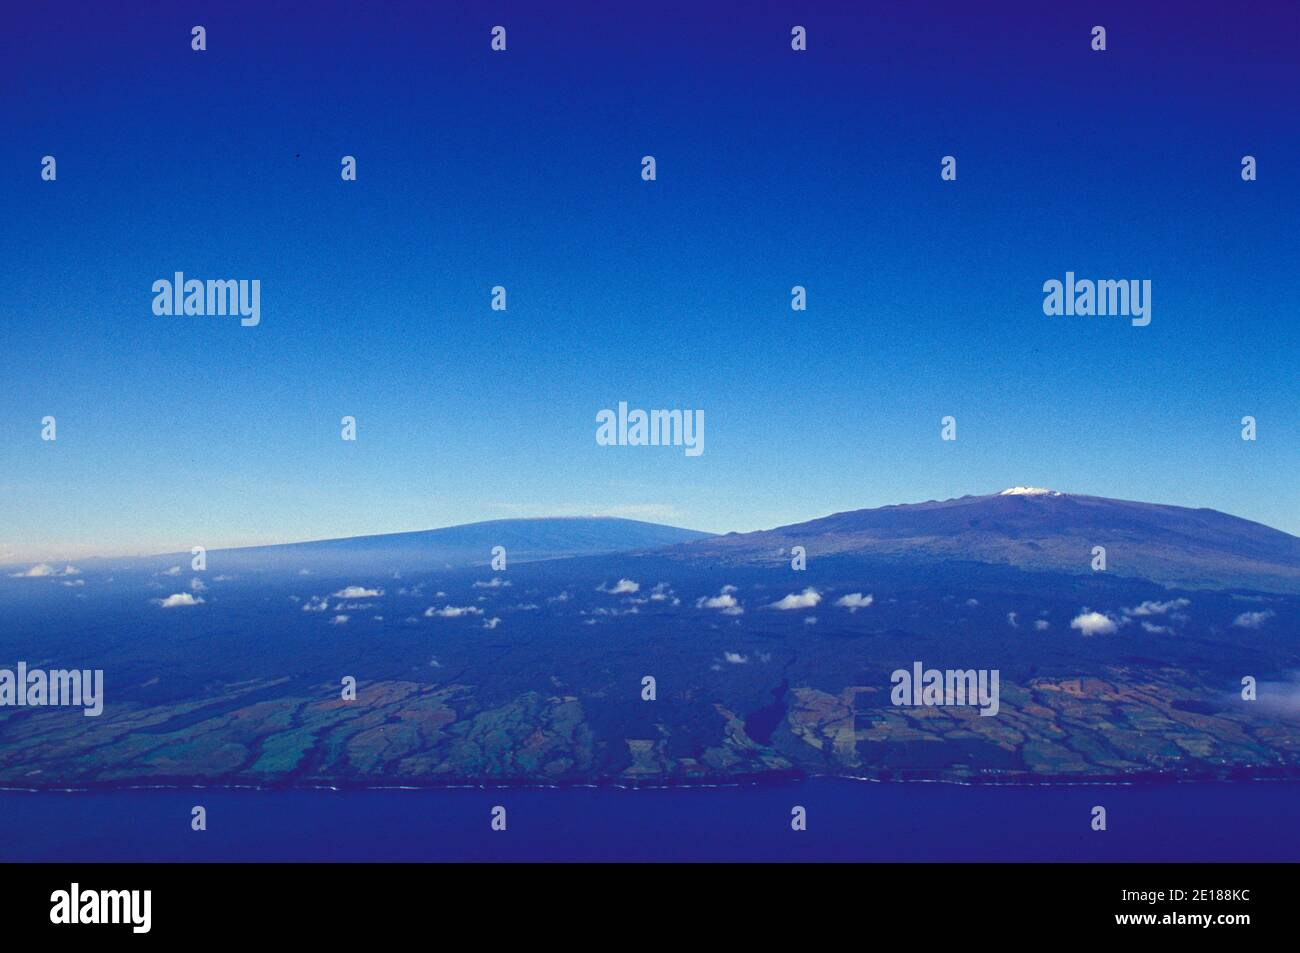 Aerial view of snow capped Mauna Kea with observatories, and Mauna Loa in background. Foto de stock